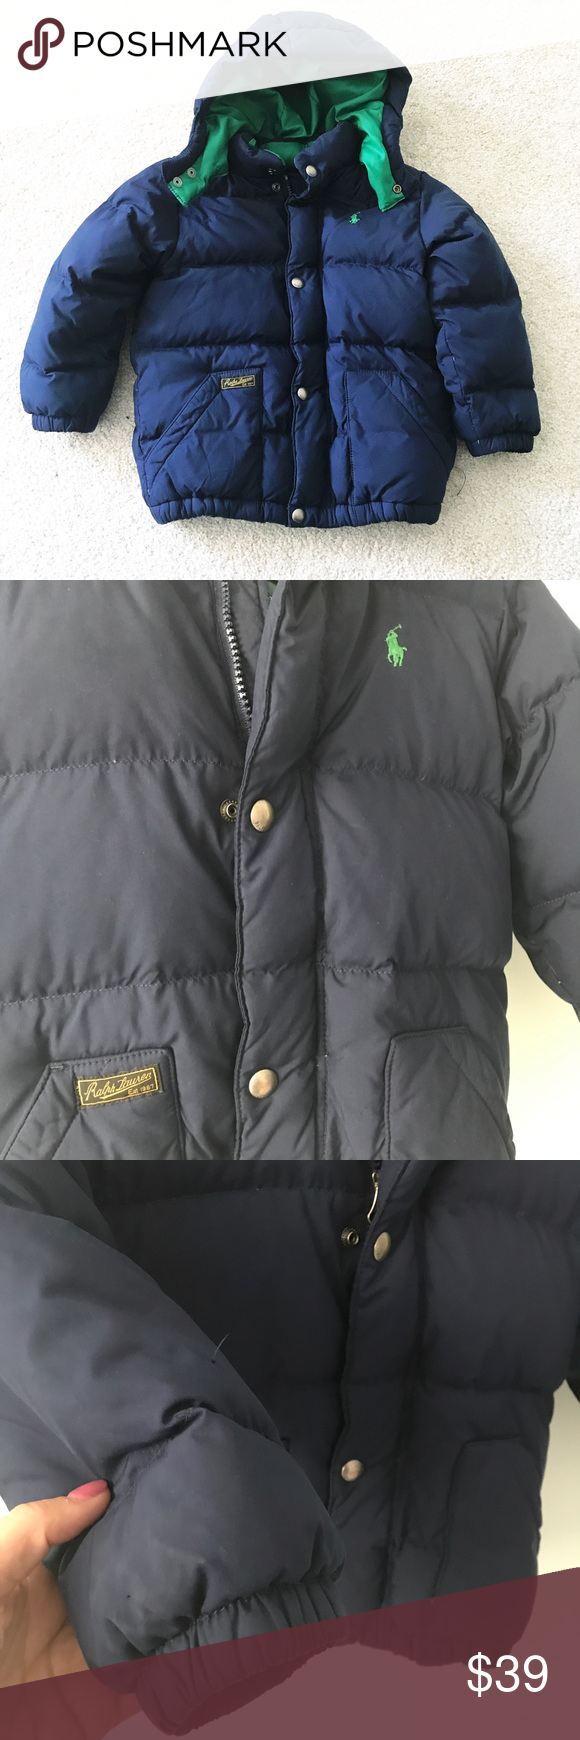 0e3347abf034 Boys Polo RALPH LAUREN Navy blue down Puffer Coat Gently worn down filled puffer  coat with